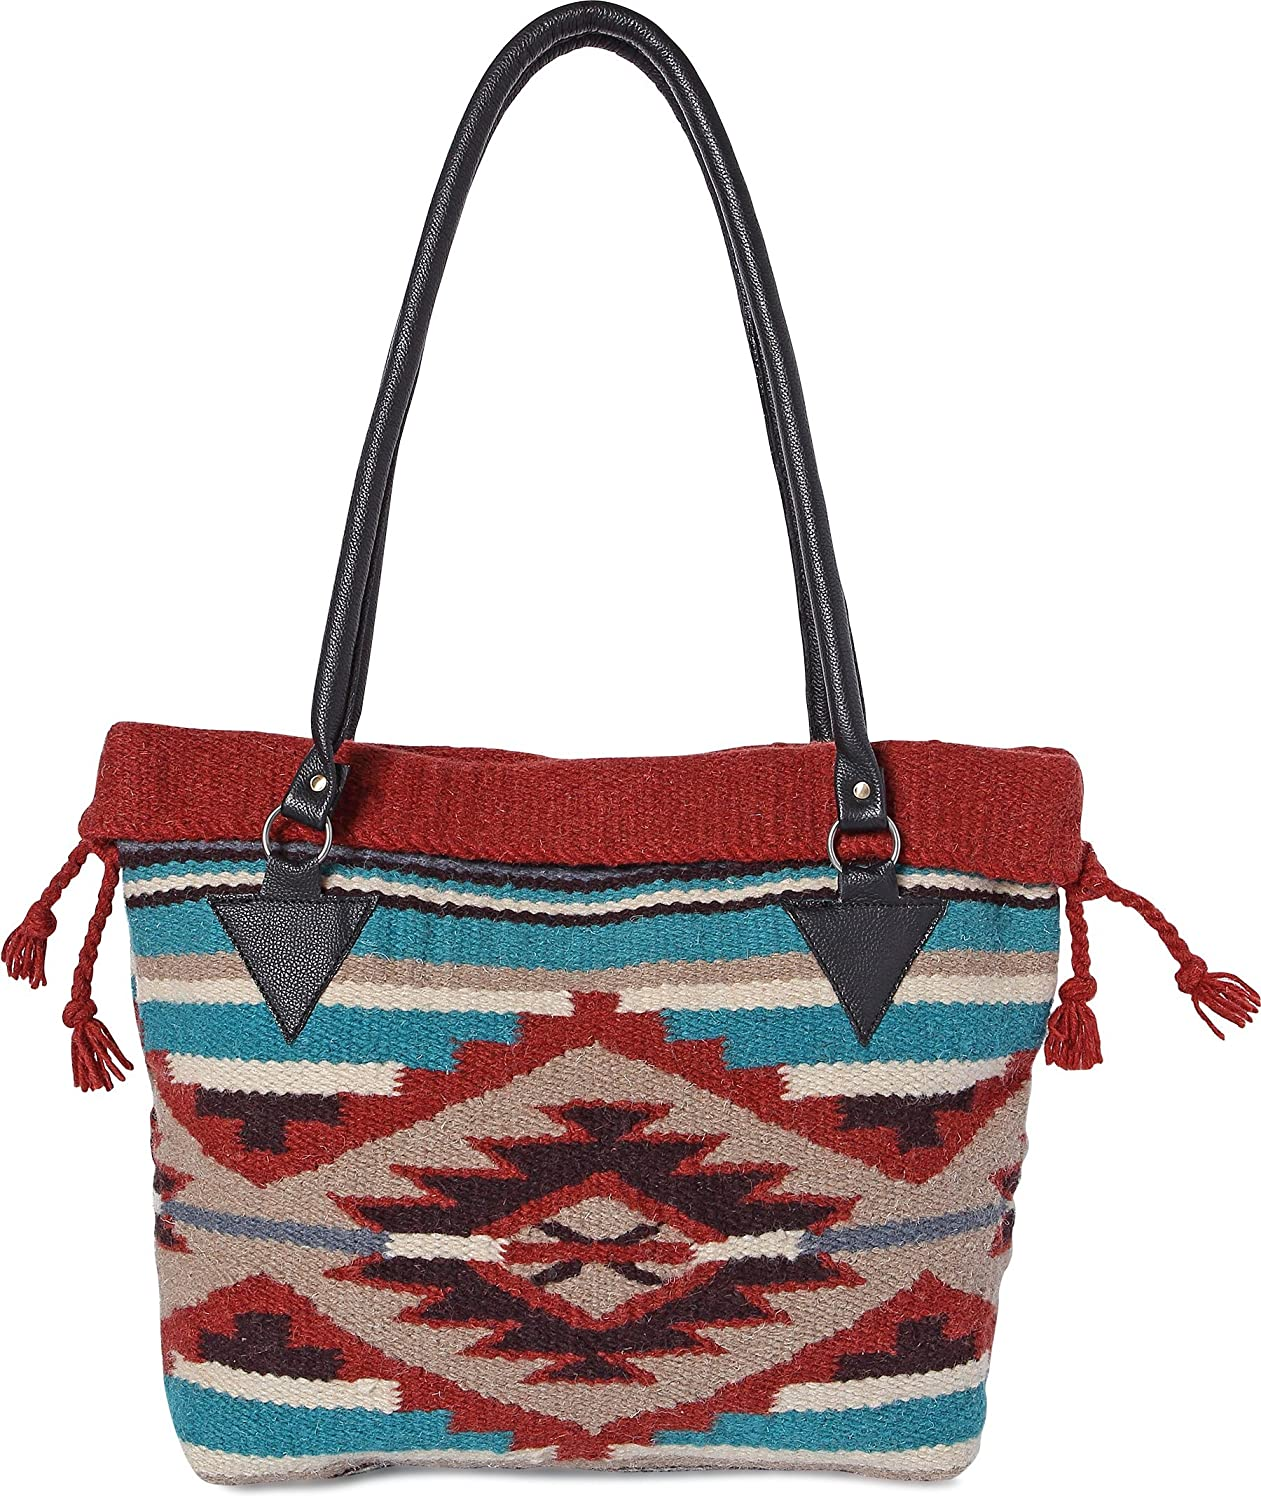 Amazon.com  Handwoven Wool Malibu Purse with Genuine Leather handles. Large  Eco Friendly Tote Bag 15d40a06a0838